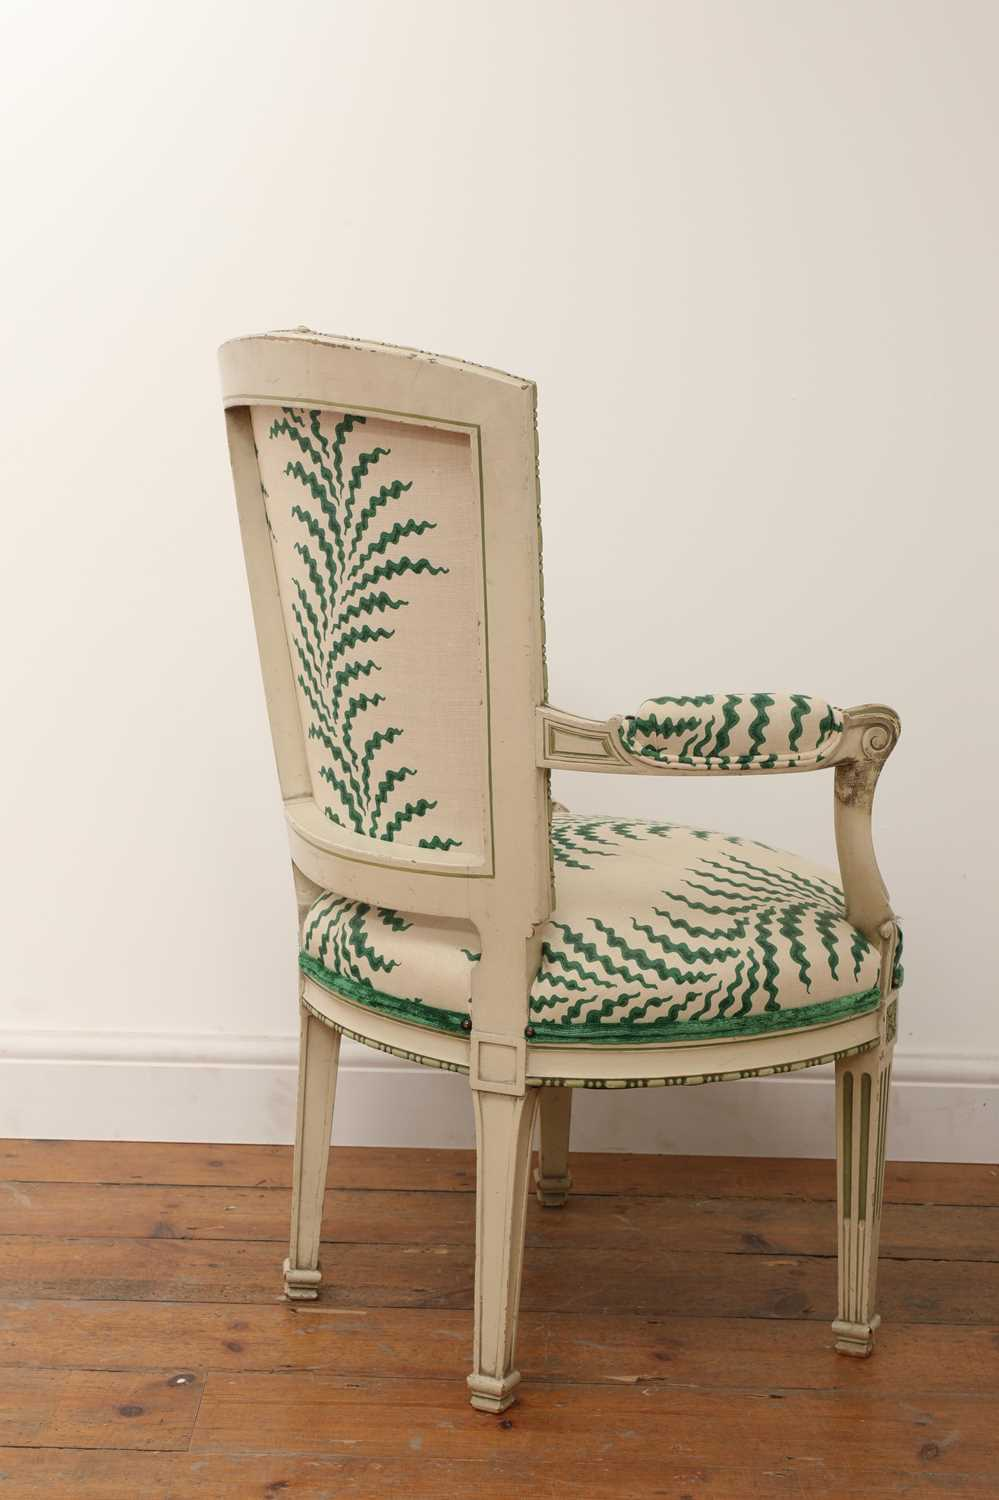 A French Louis XVI-style painted fauteuil, - Image 3 of 7